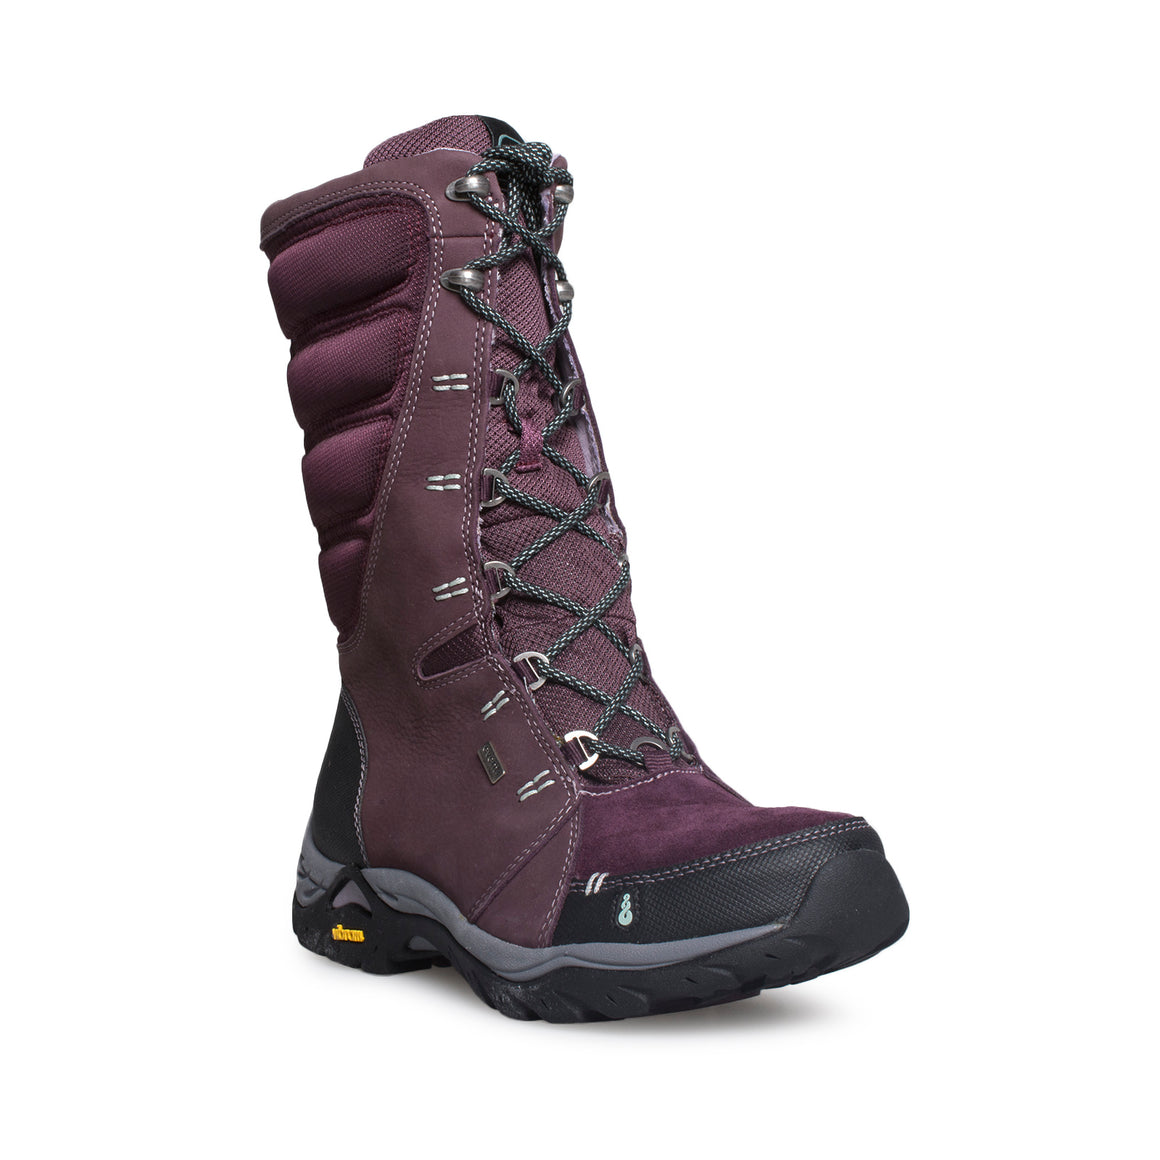 AHNU Grade Northridge Wint Hiking Boots - Women's